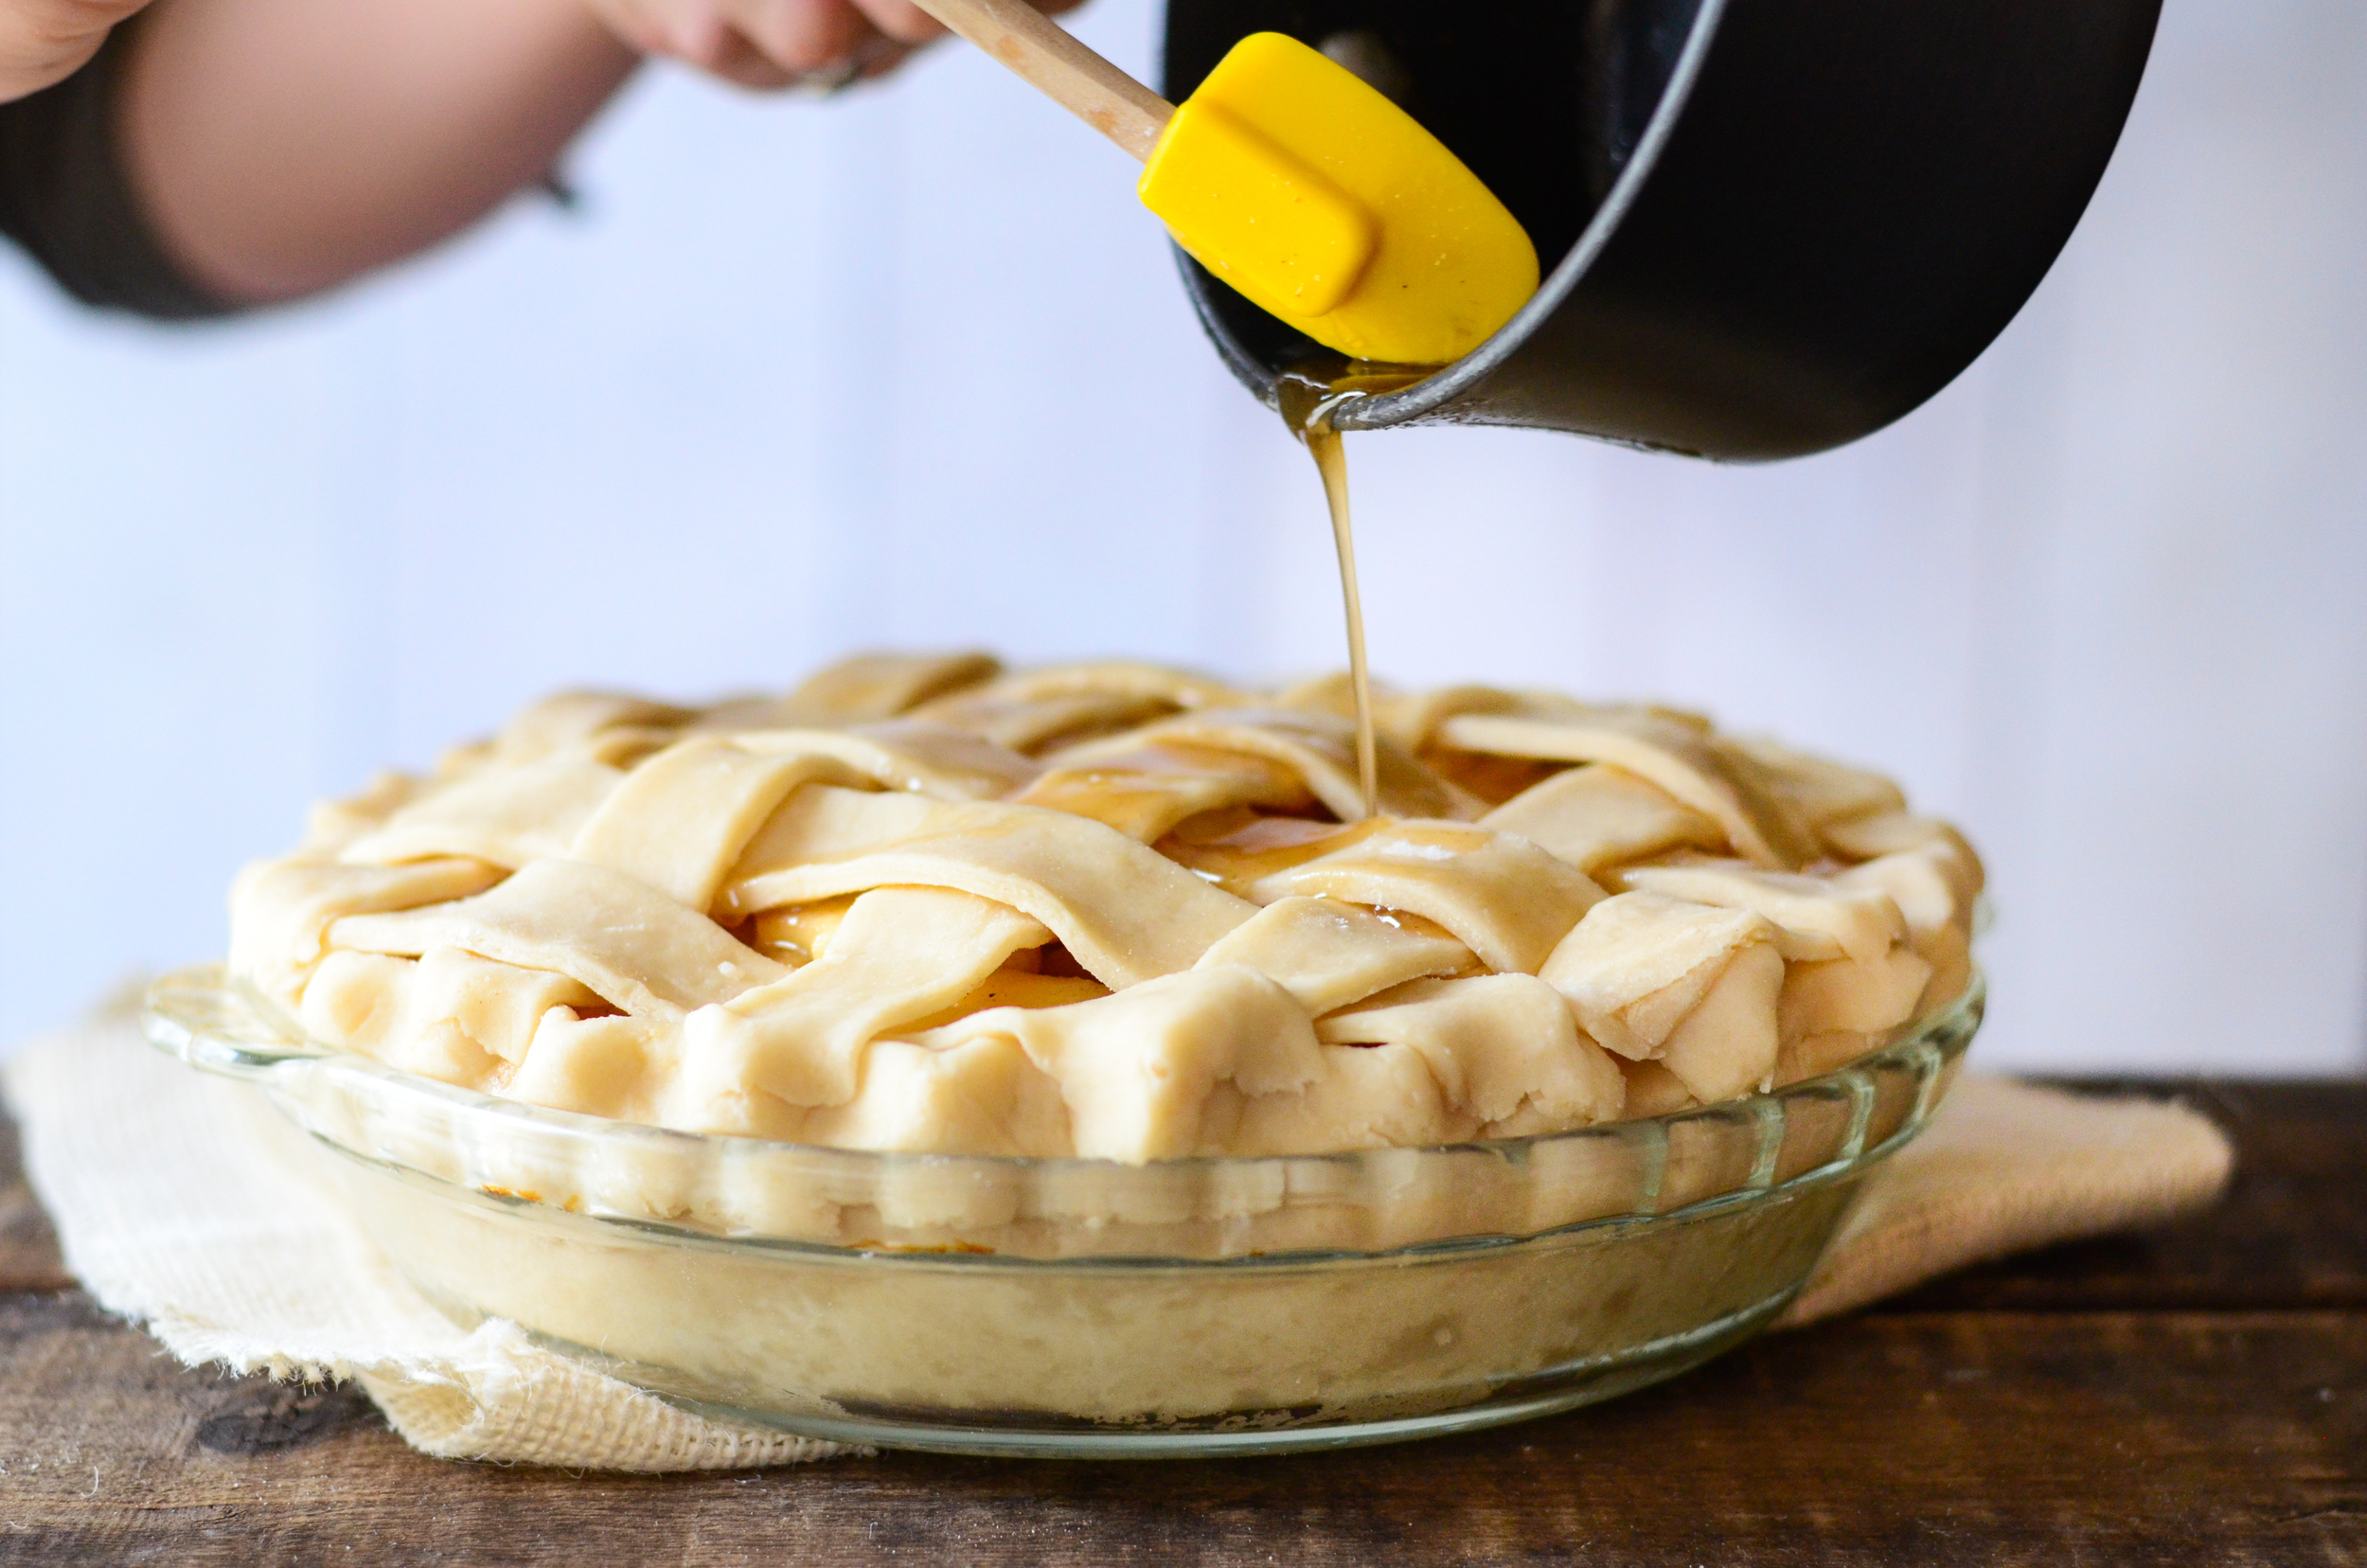 Food Photography Tips - The Perfect Pie Crust - www.mommatography.com